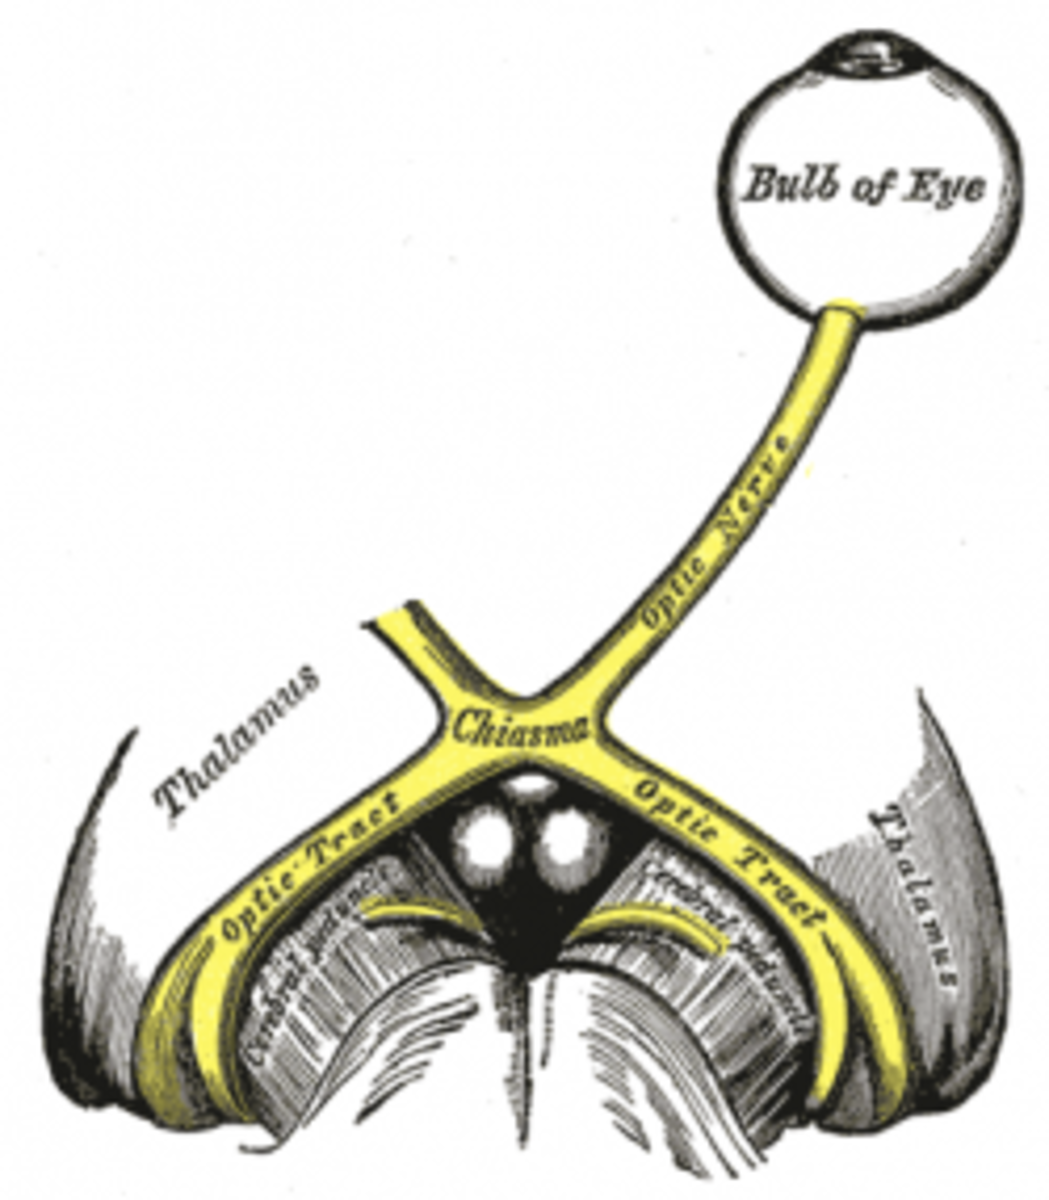 Optic nerve from Gray's Anatomy 1918 edition